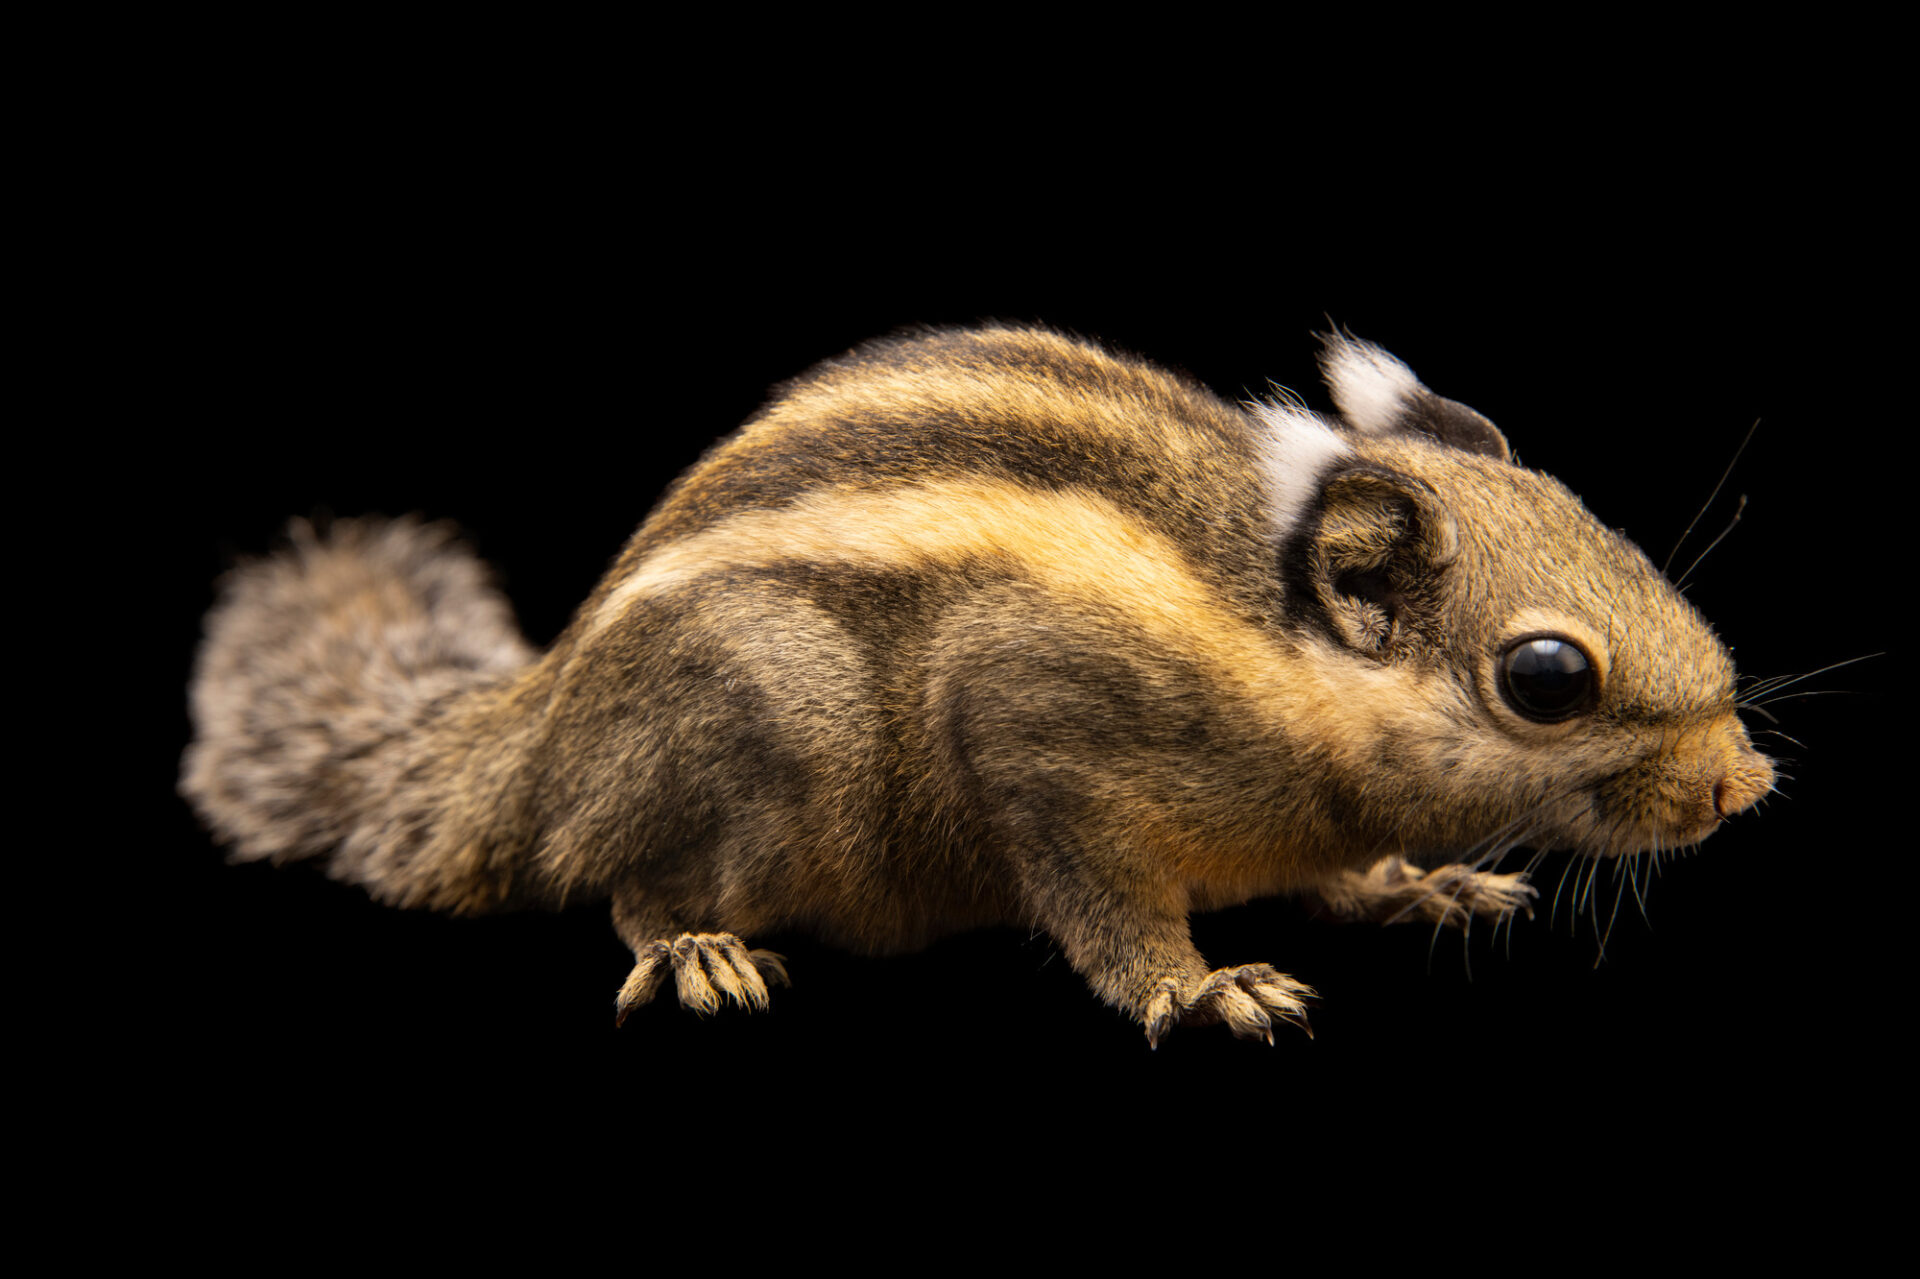 Photo: A Himalayan striped squirrel (Tamiops macclellandi) at Tierpark Berlin.